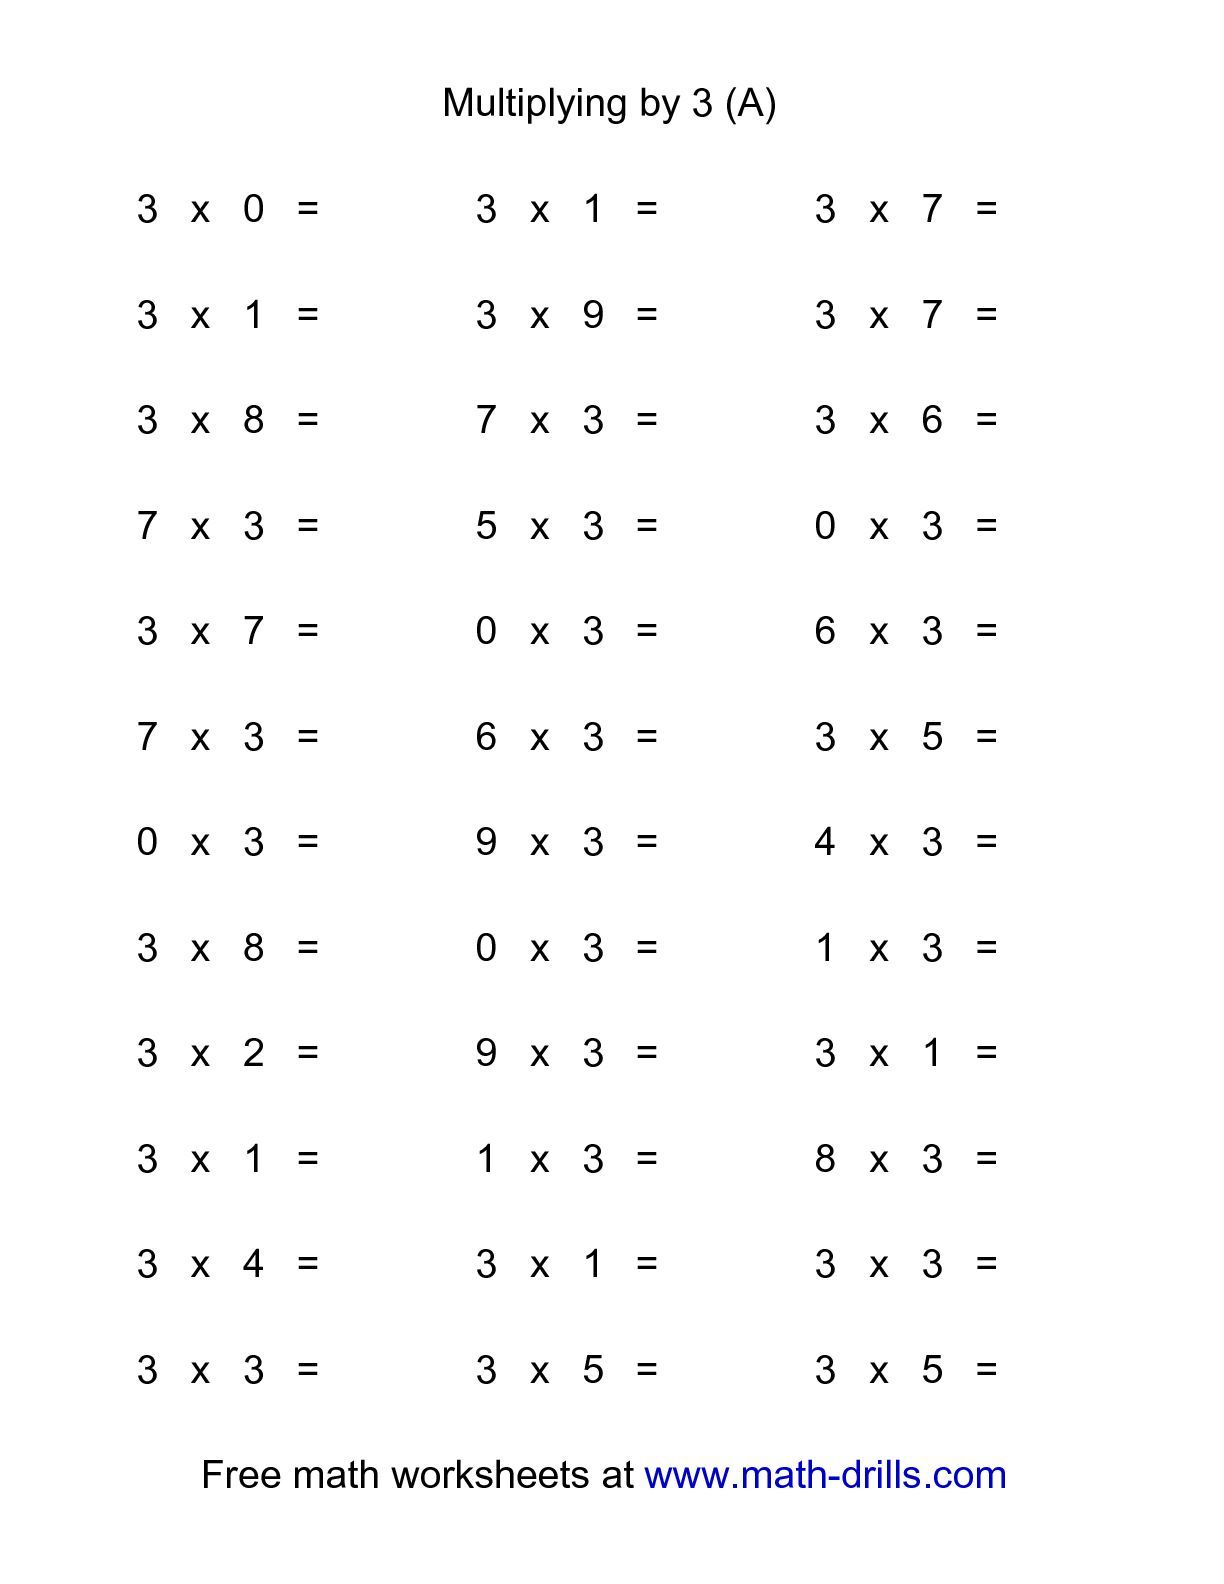 Worksheets Integrated Math 1 Worksheets 36 horizontal multiplication facts questions 3 by 0 9 a worksheet 4 a